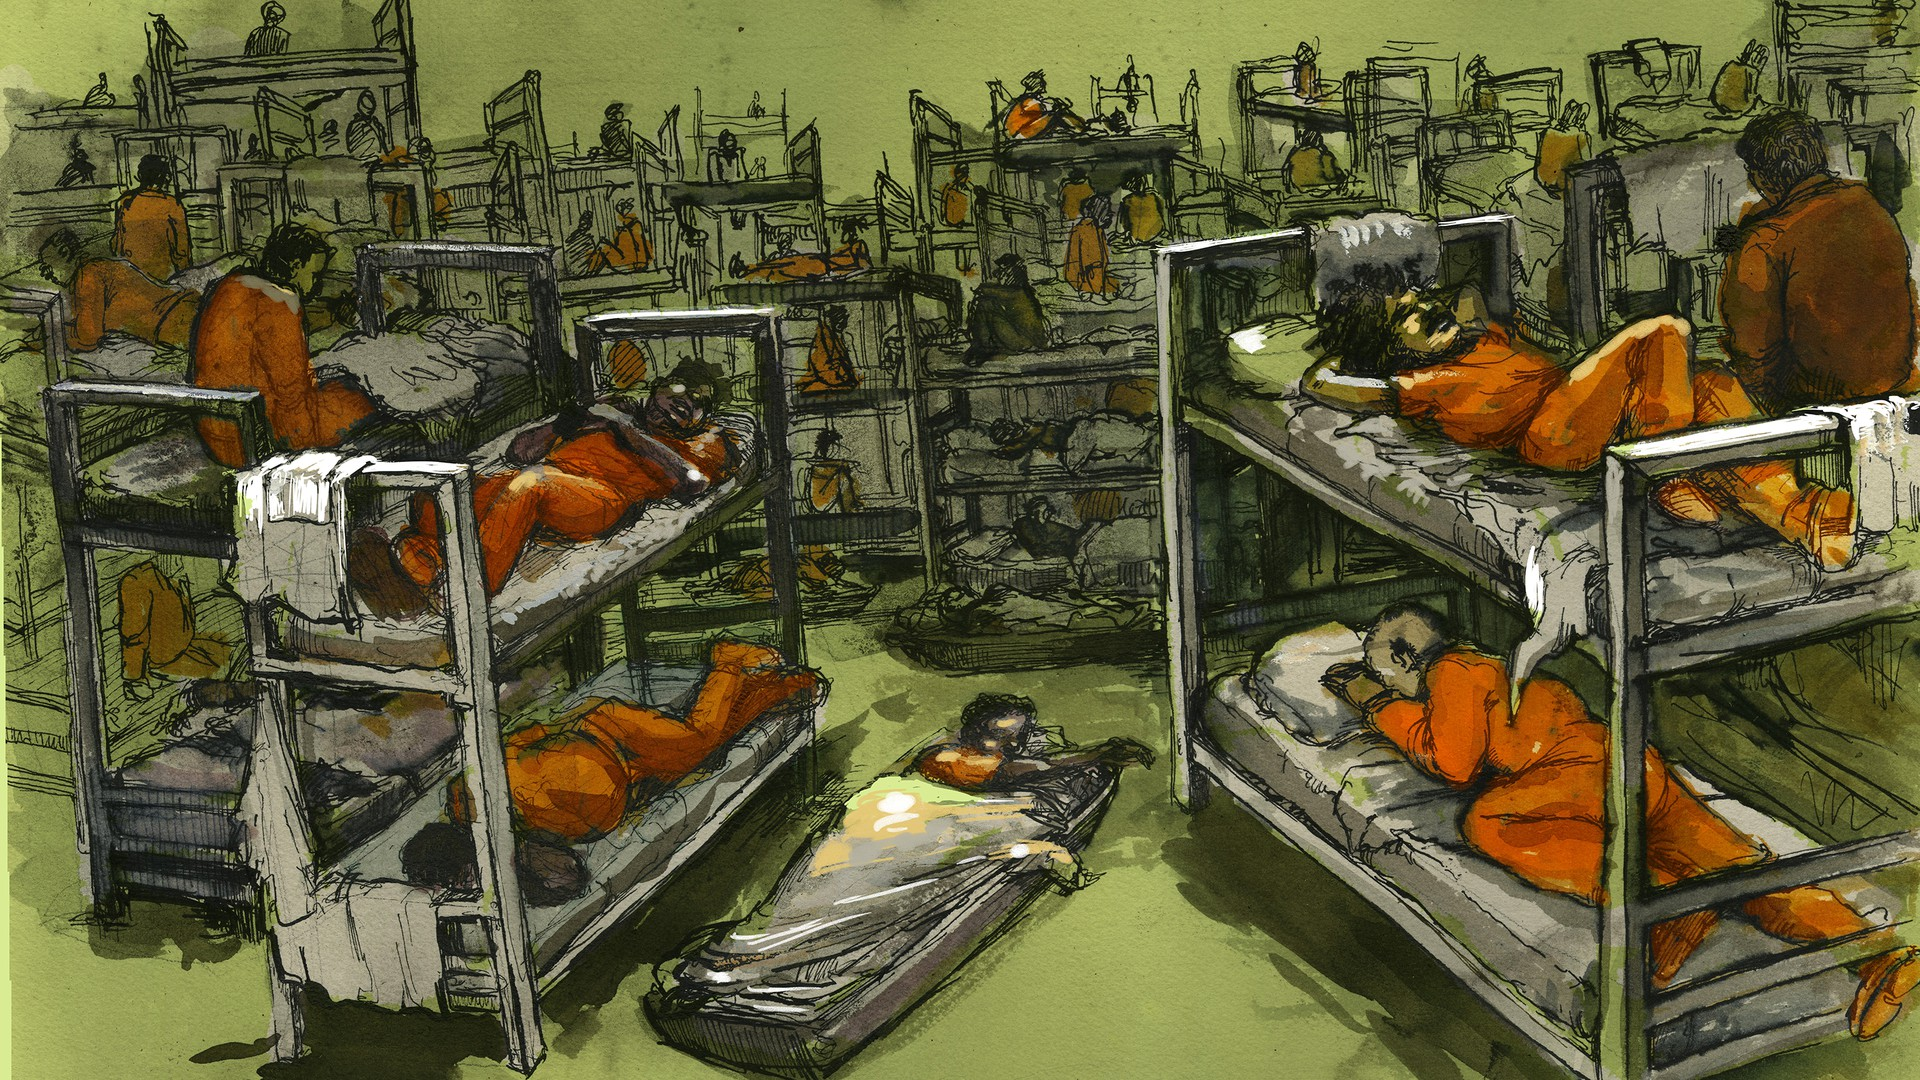 a crowded jail cell in green and orange hues